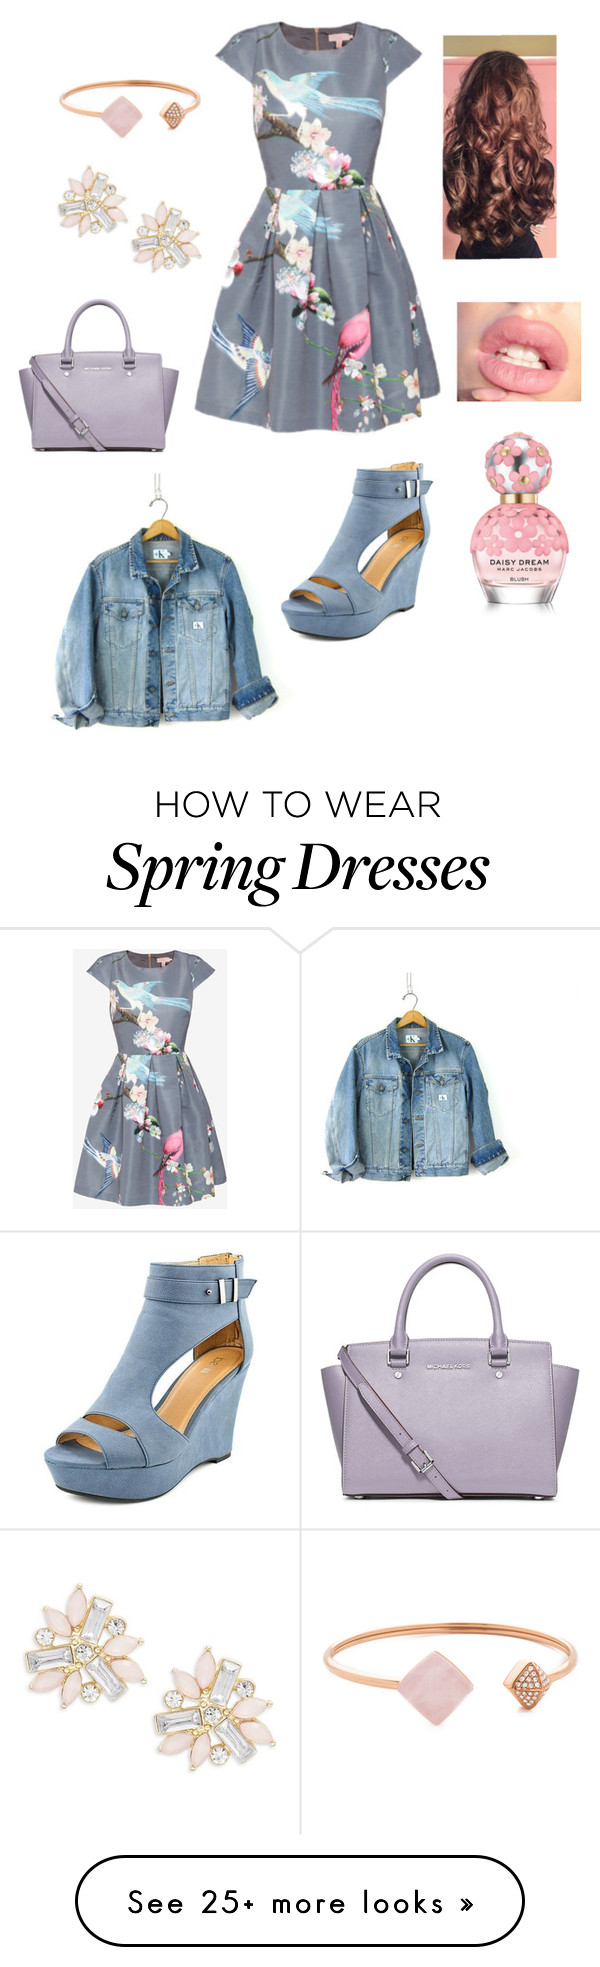 """Hurry up Spring"" by fashionlover351 on Polyvore featuring Ted Baker, Calvin Klein, MICHAEL Michael Kors, Cara, Michael Kors and Marc Jacobs"